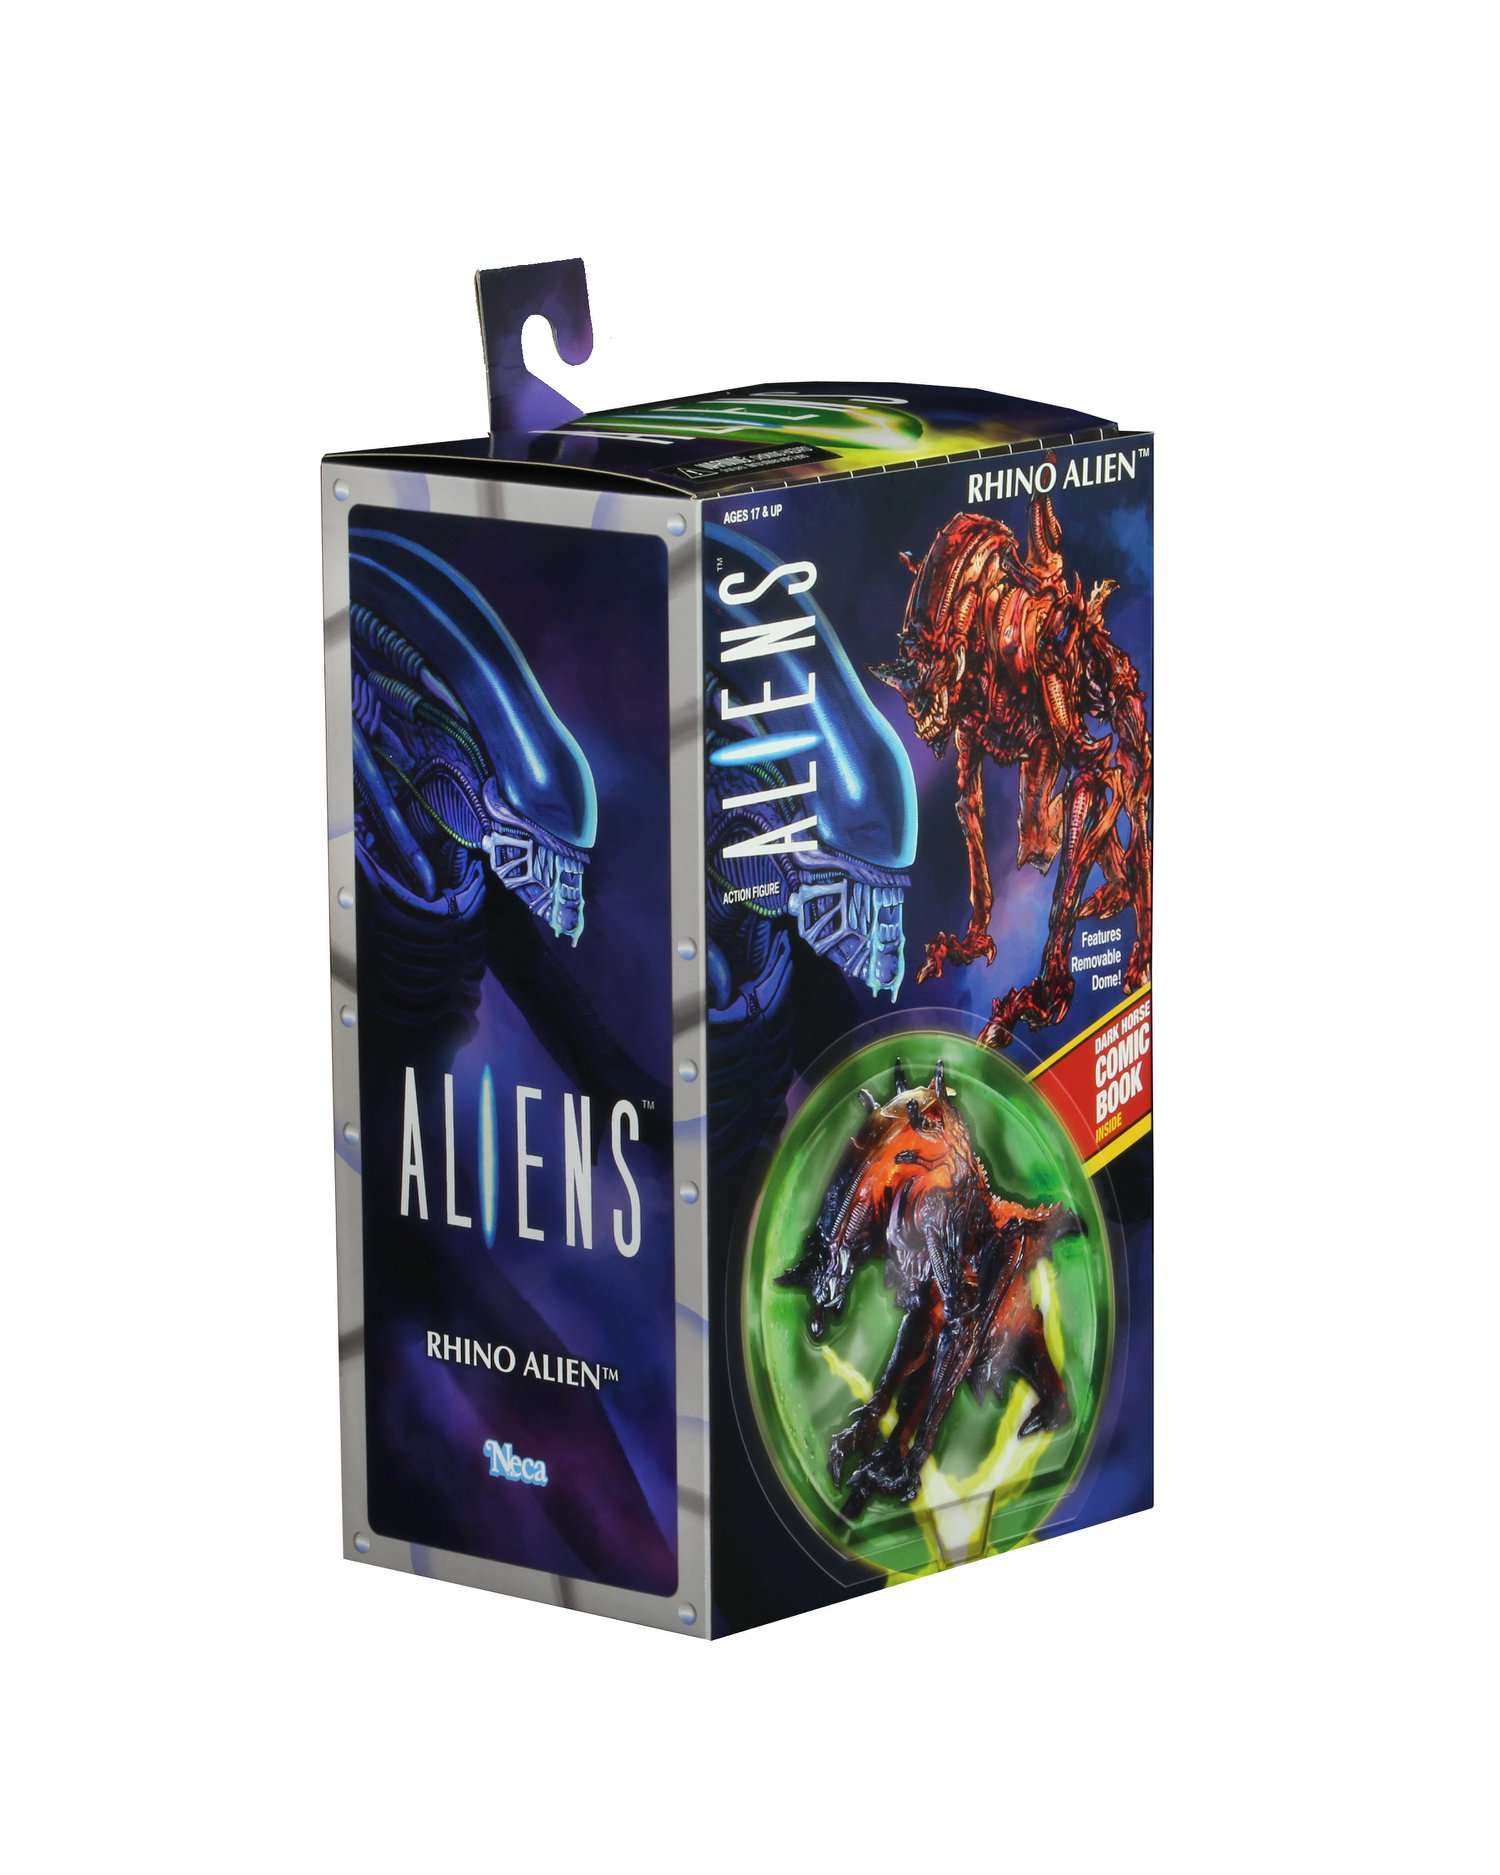 NECA Rhino Alien Packaging 001